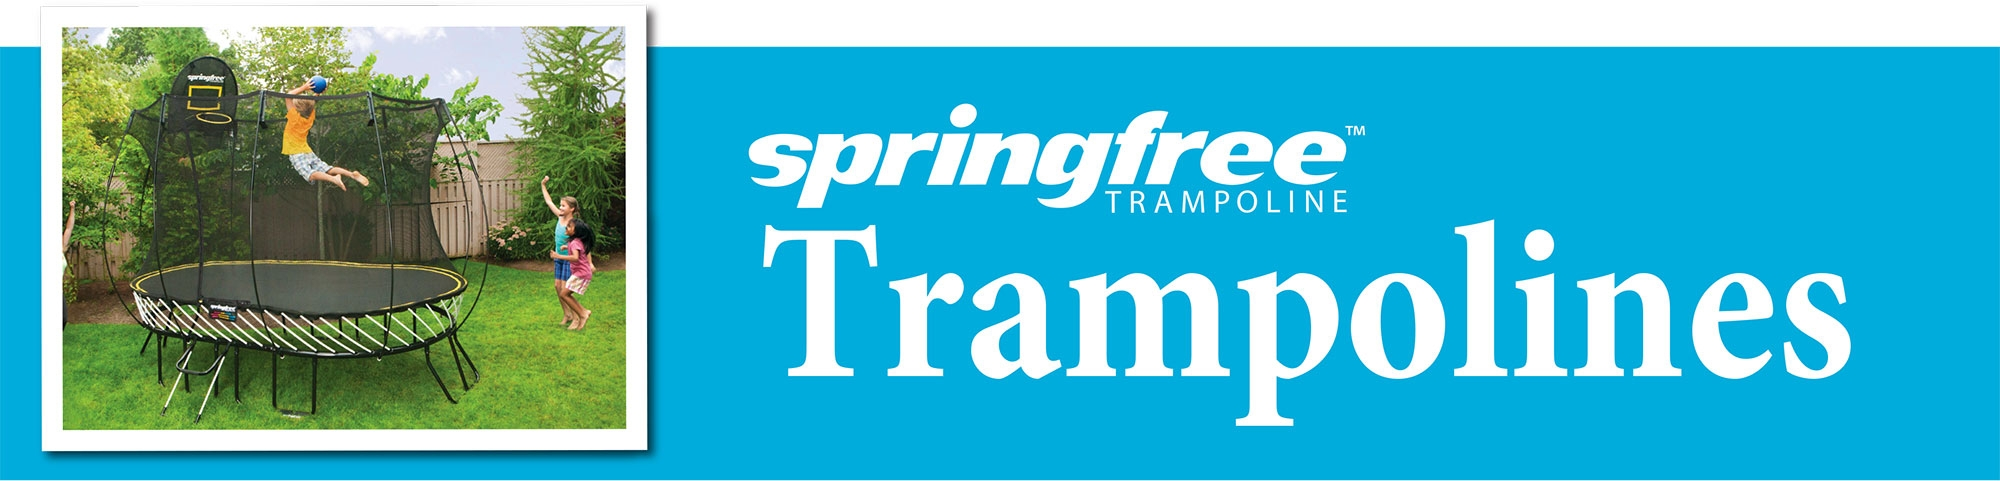 Springfree: the world's safest trampoline!